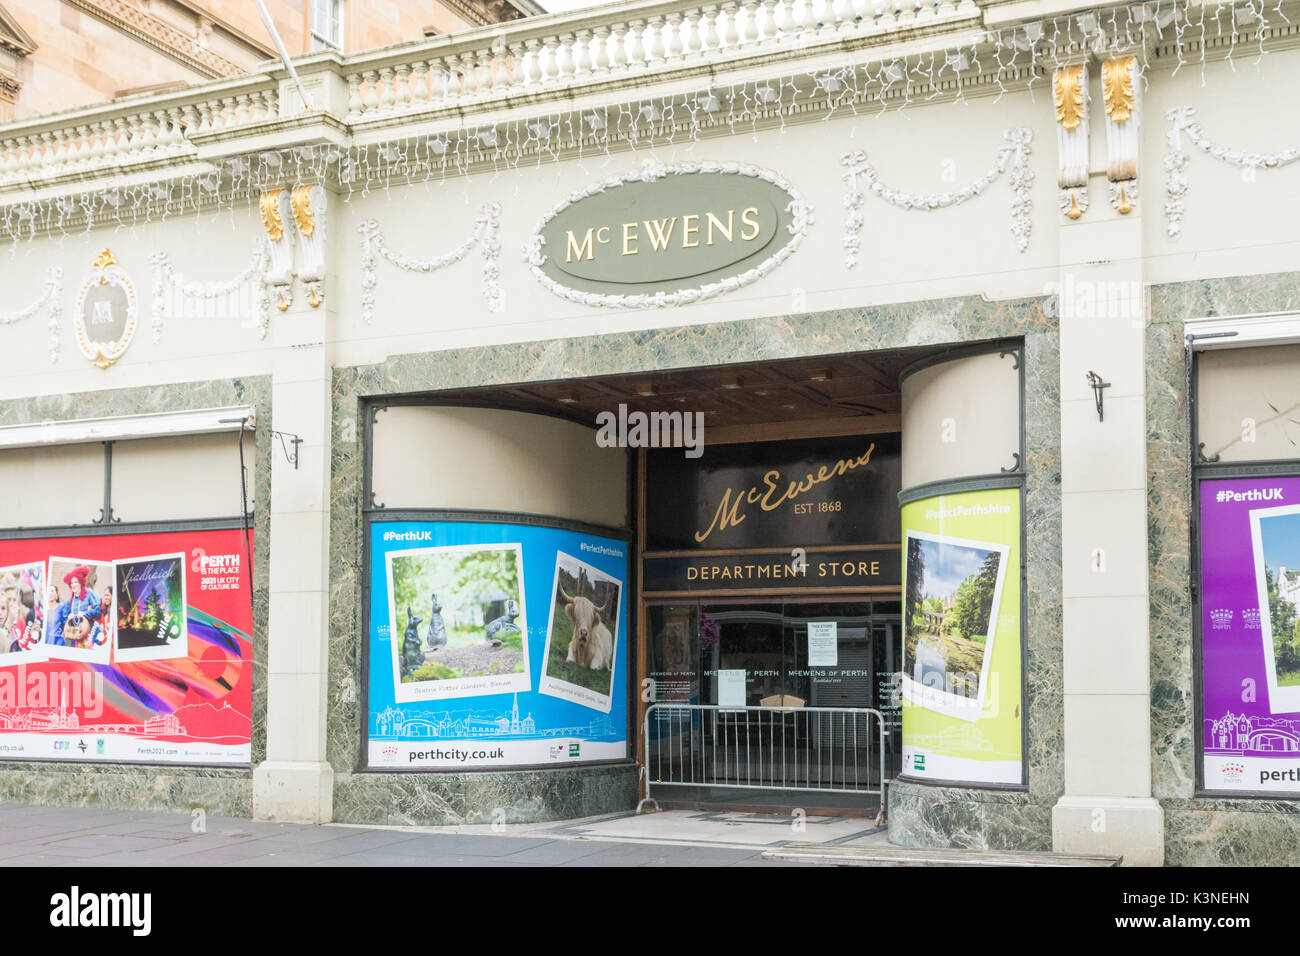 McEwens Independent department store, Perth, Scotland, UK - closed in 2016 - Stock Image